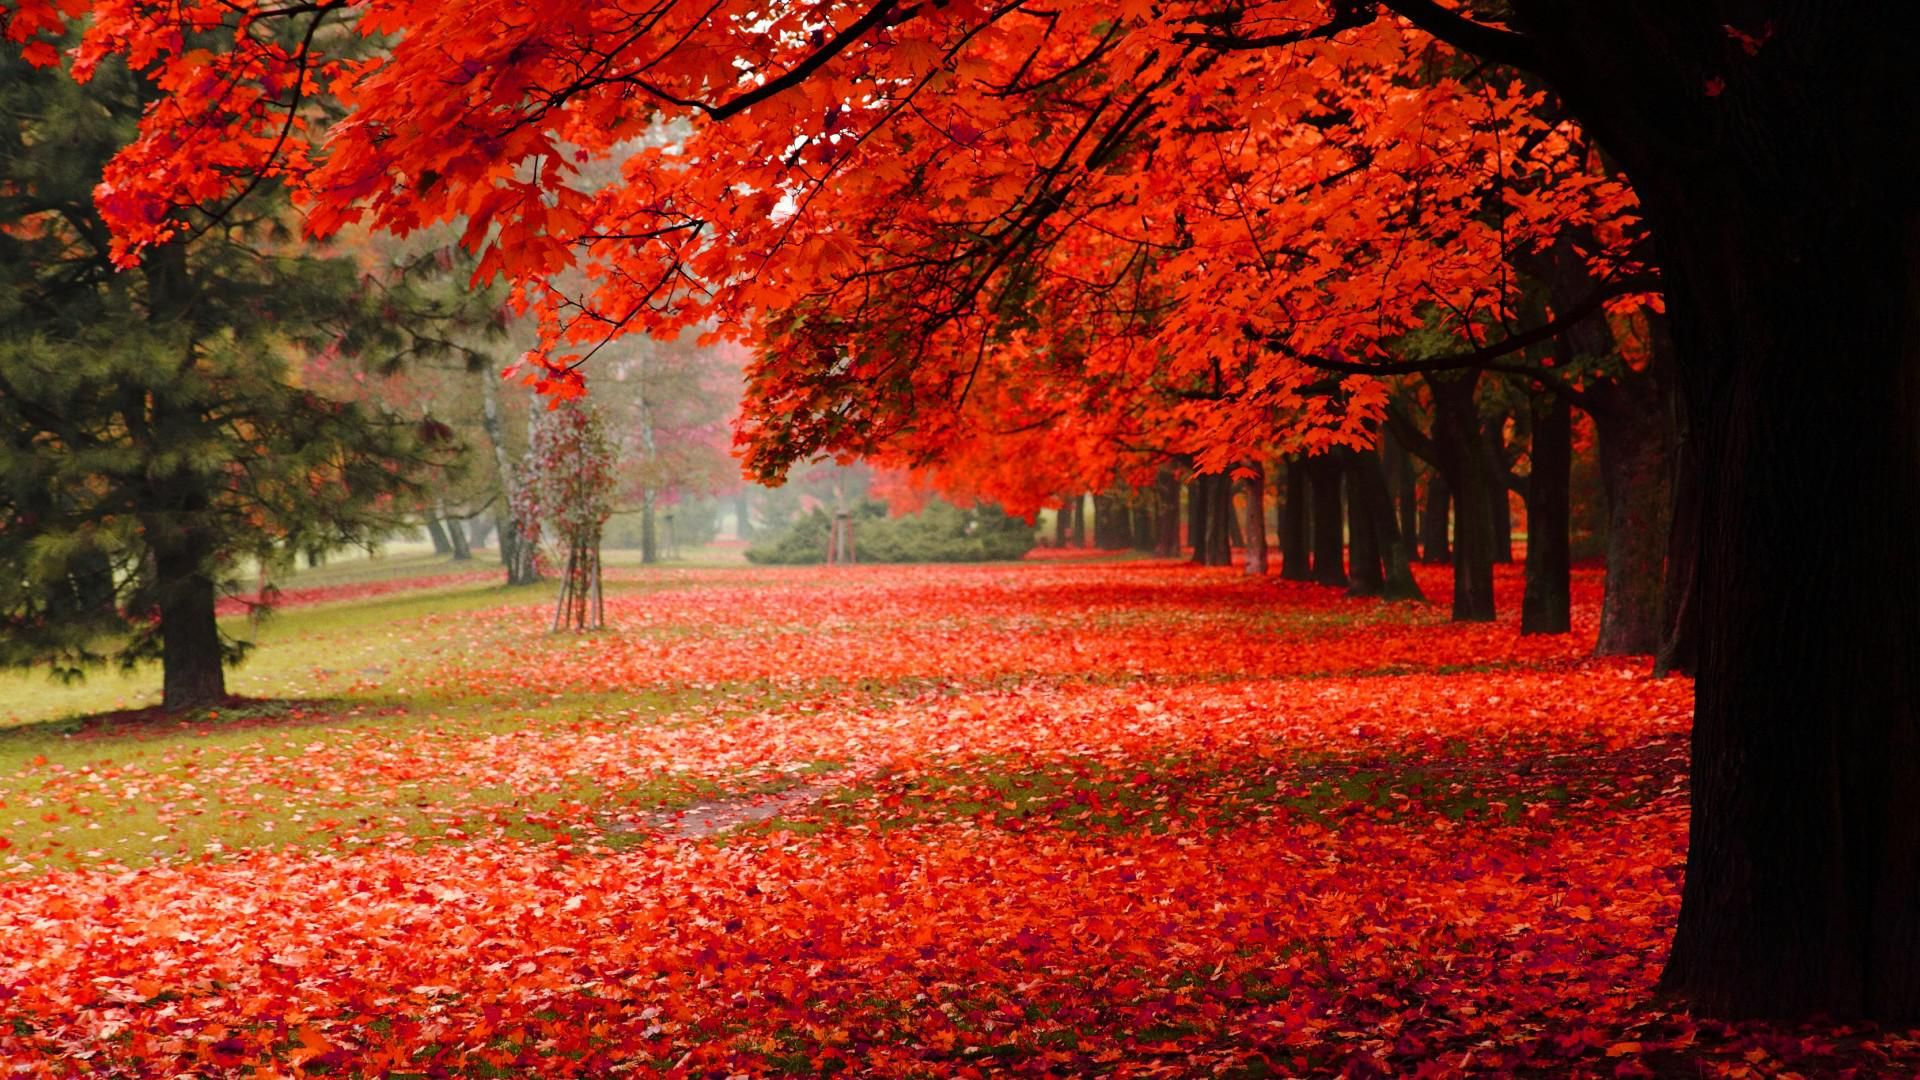 Natural Park Autumn Red Leaves Autumn Scenery Hd Hd Scenery Wallpaper Hd Nature Wallpapers Nature Wallpaper